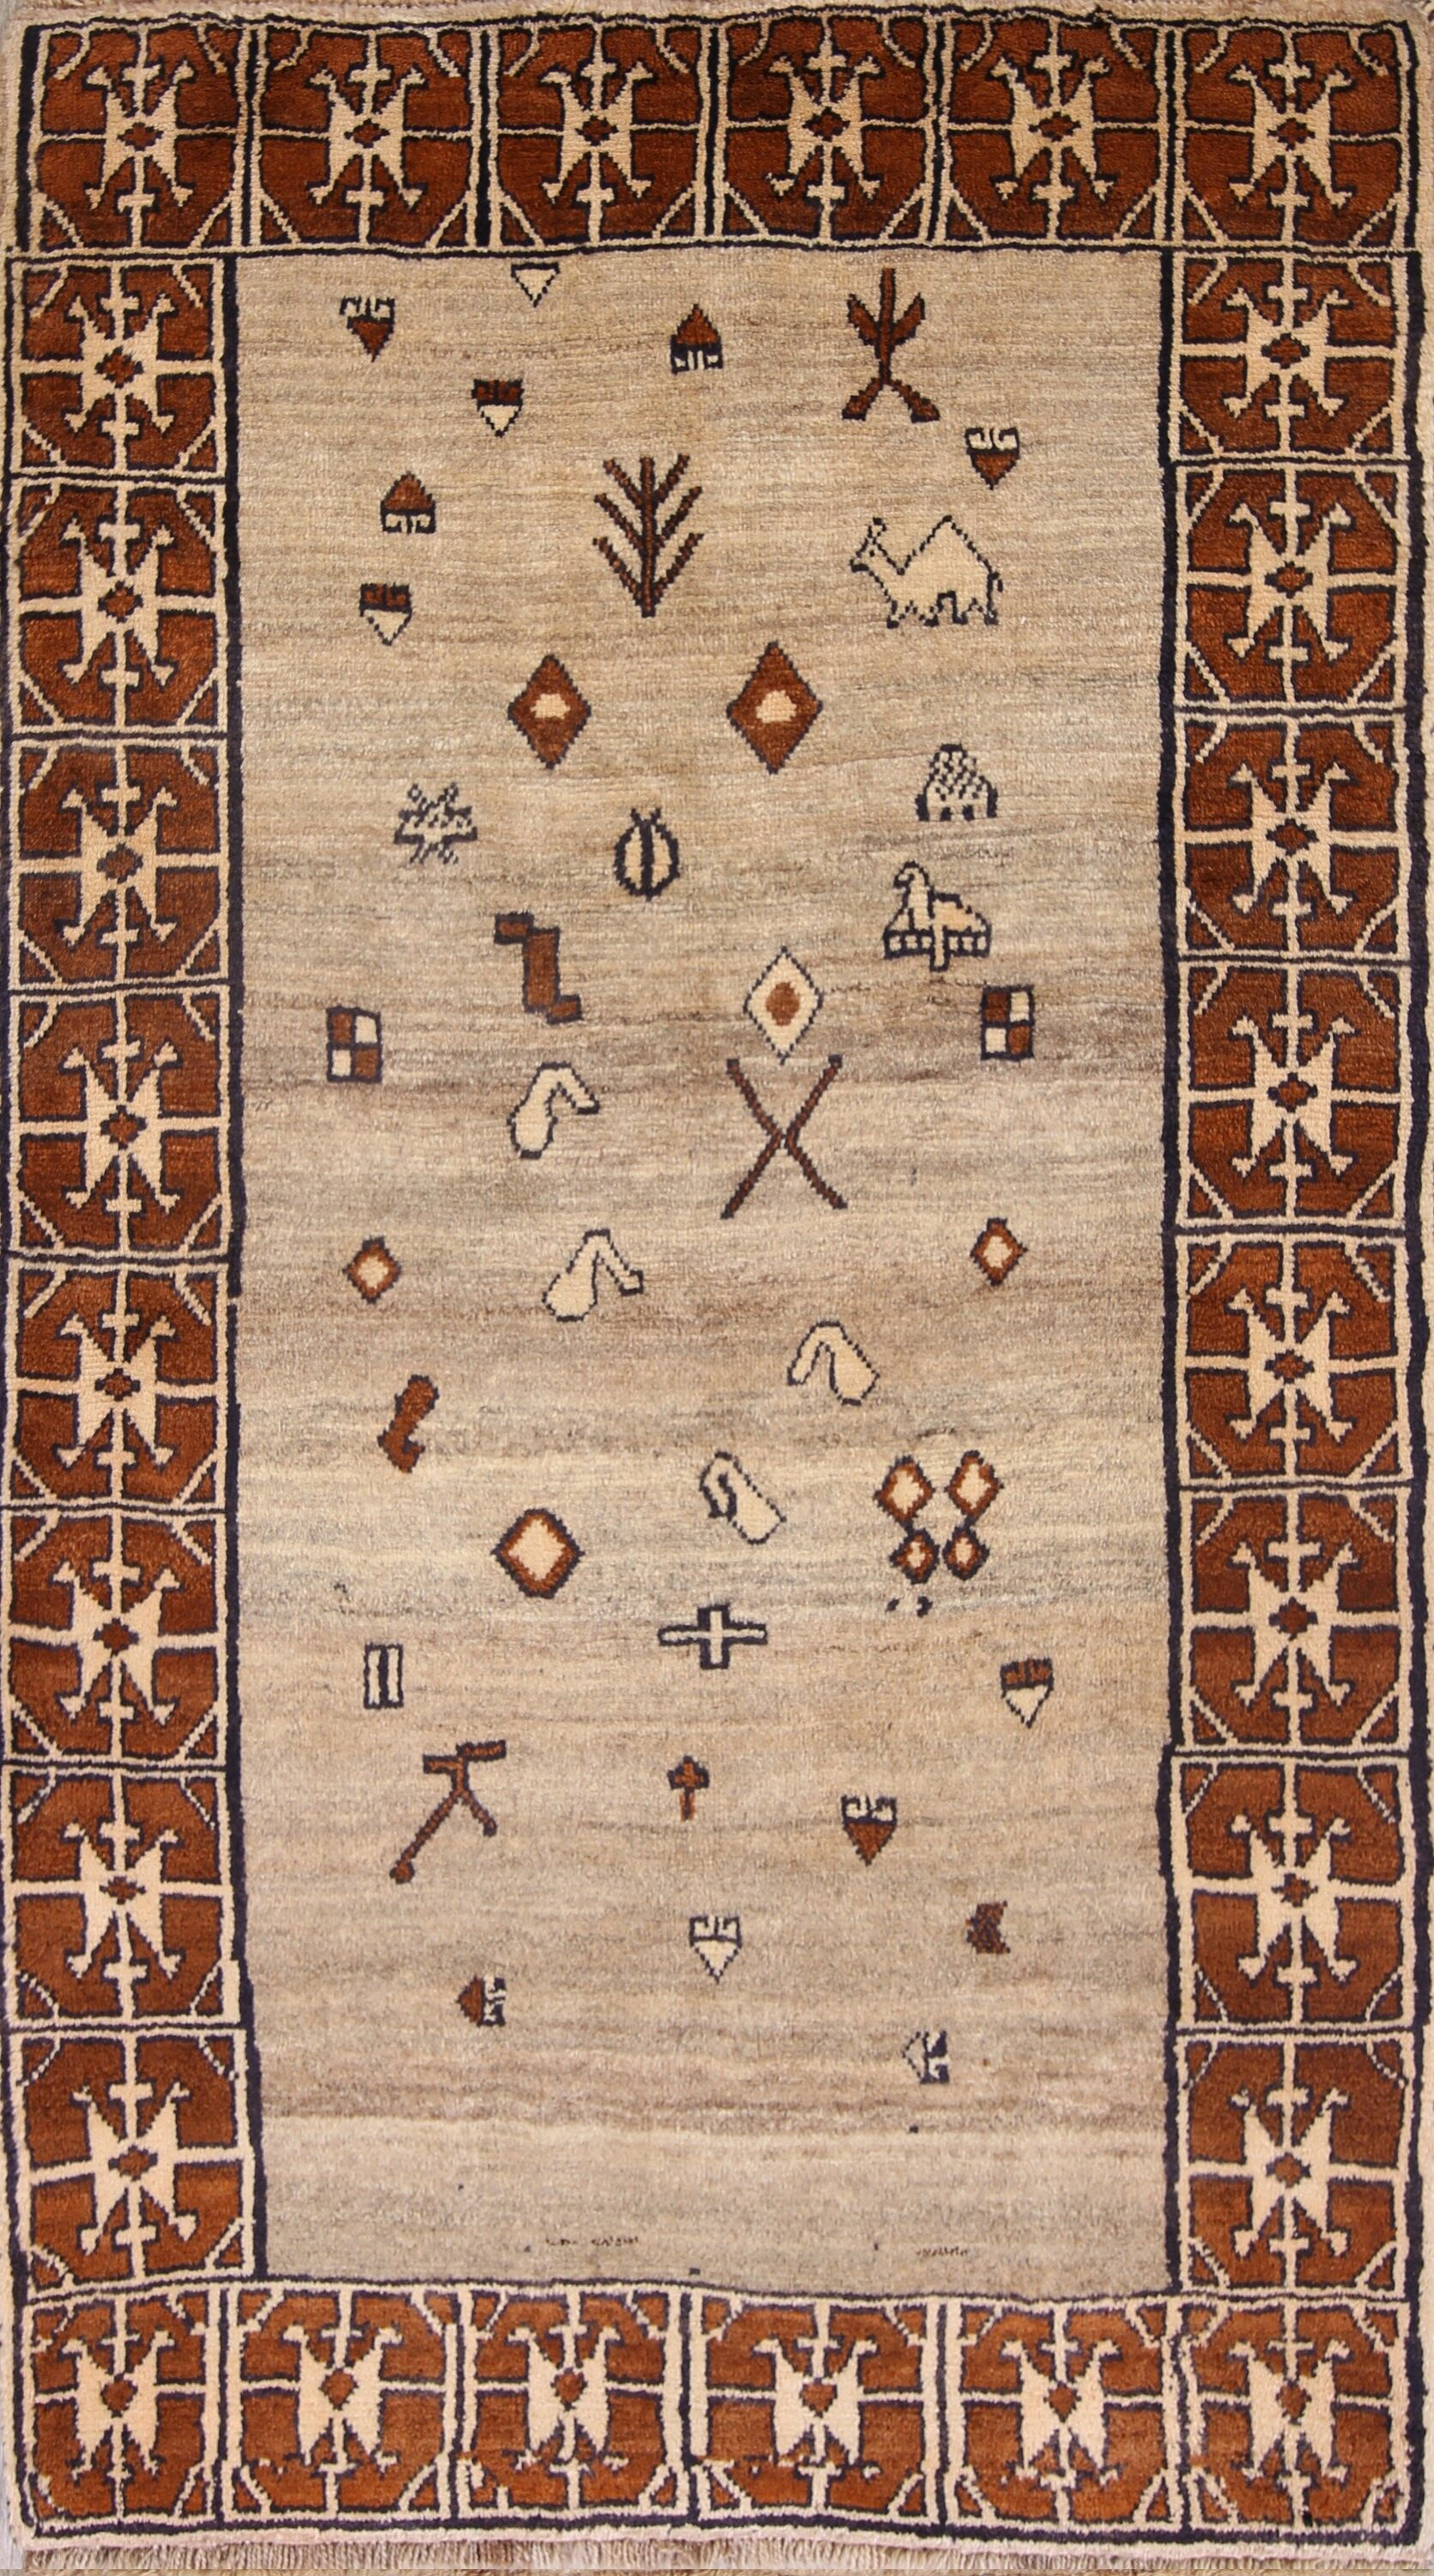 One-of-a-Kind Geometric Tribal Traditional Nomad Gabbe Shiraz Persian Hand-Knotted 3'10